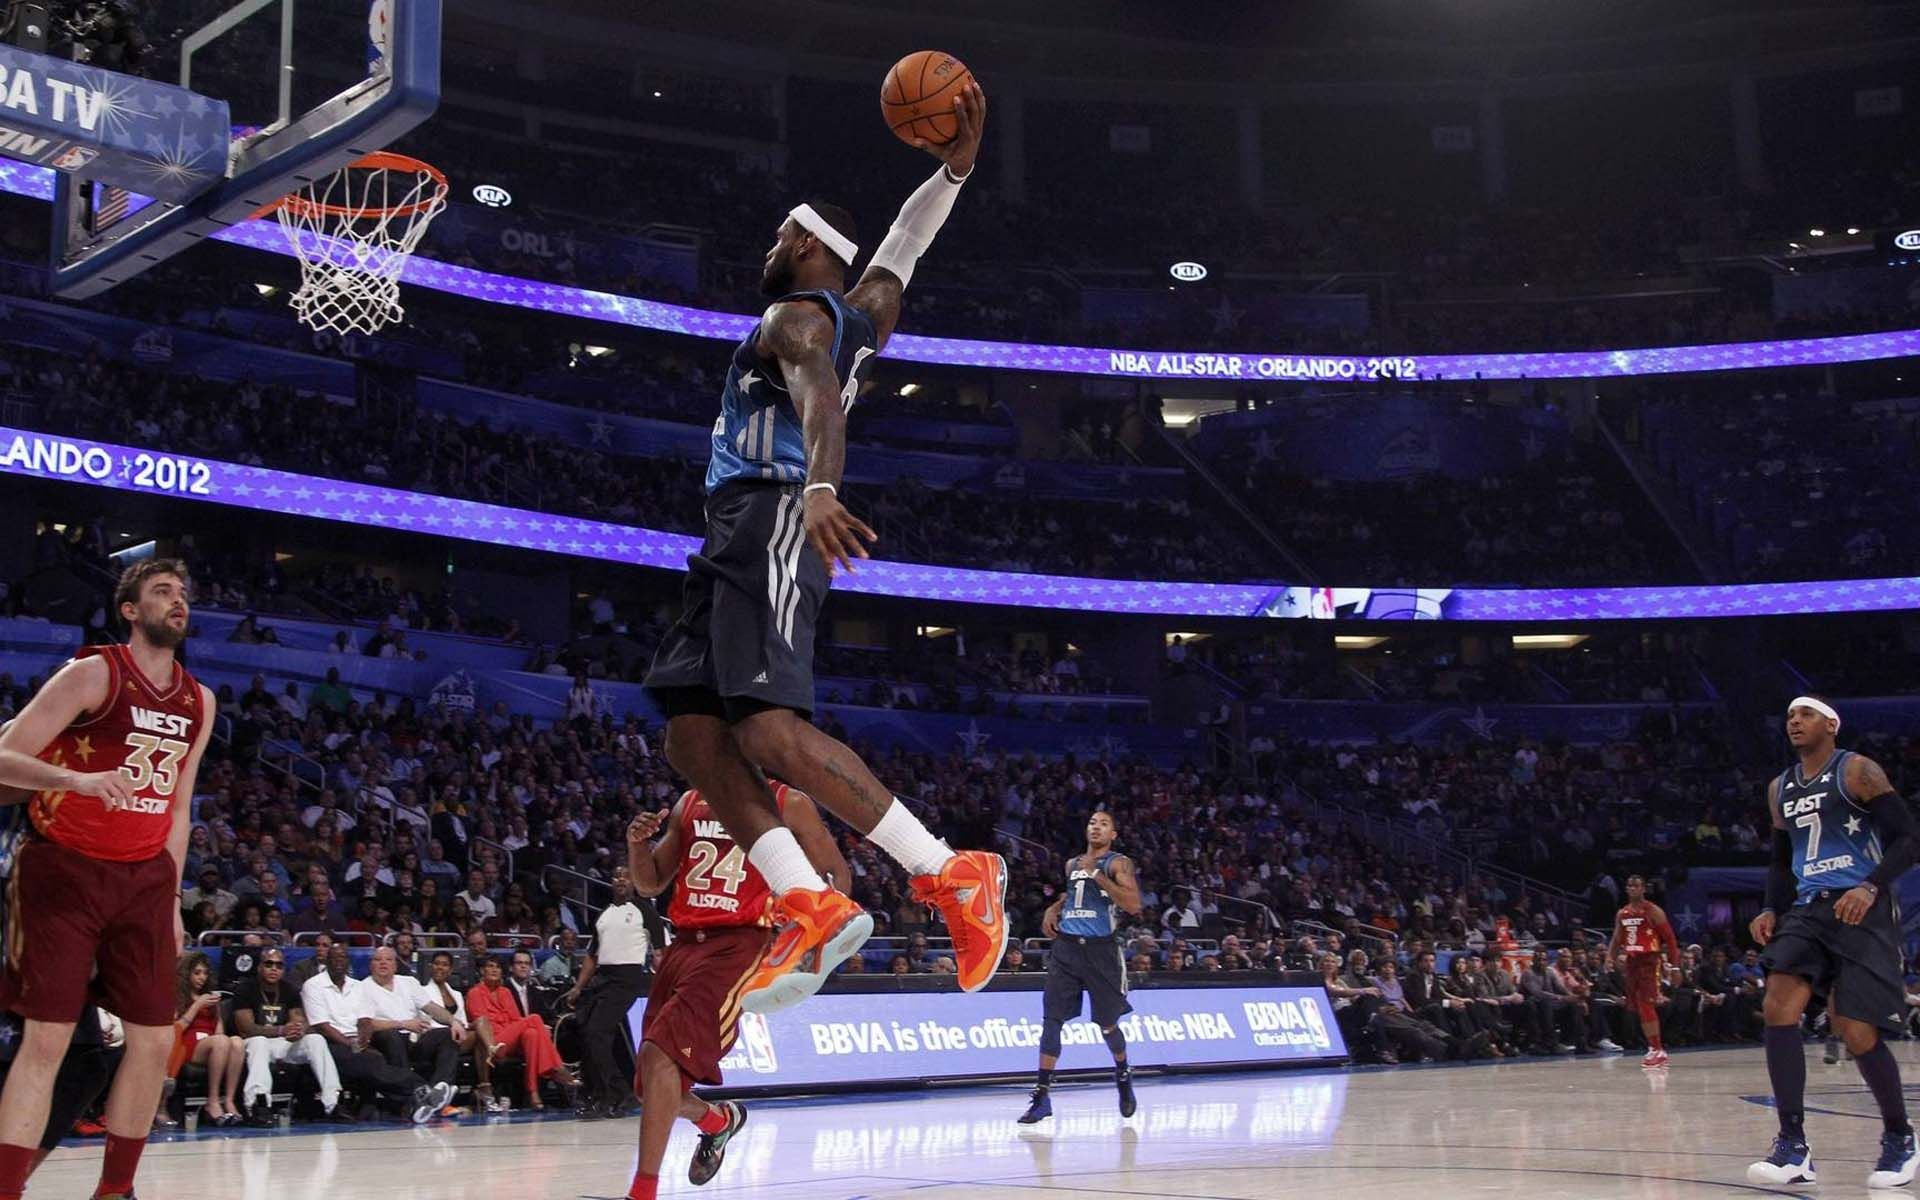 Sports Basketball Wallpaper Cool Pc Wallpapers Sports